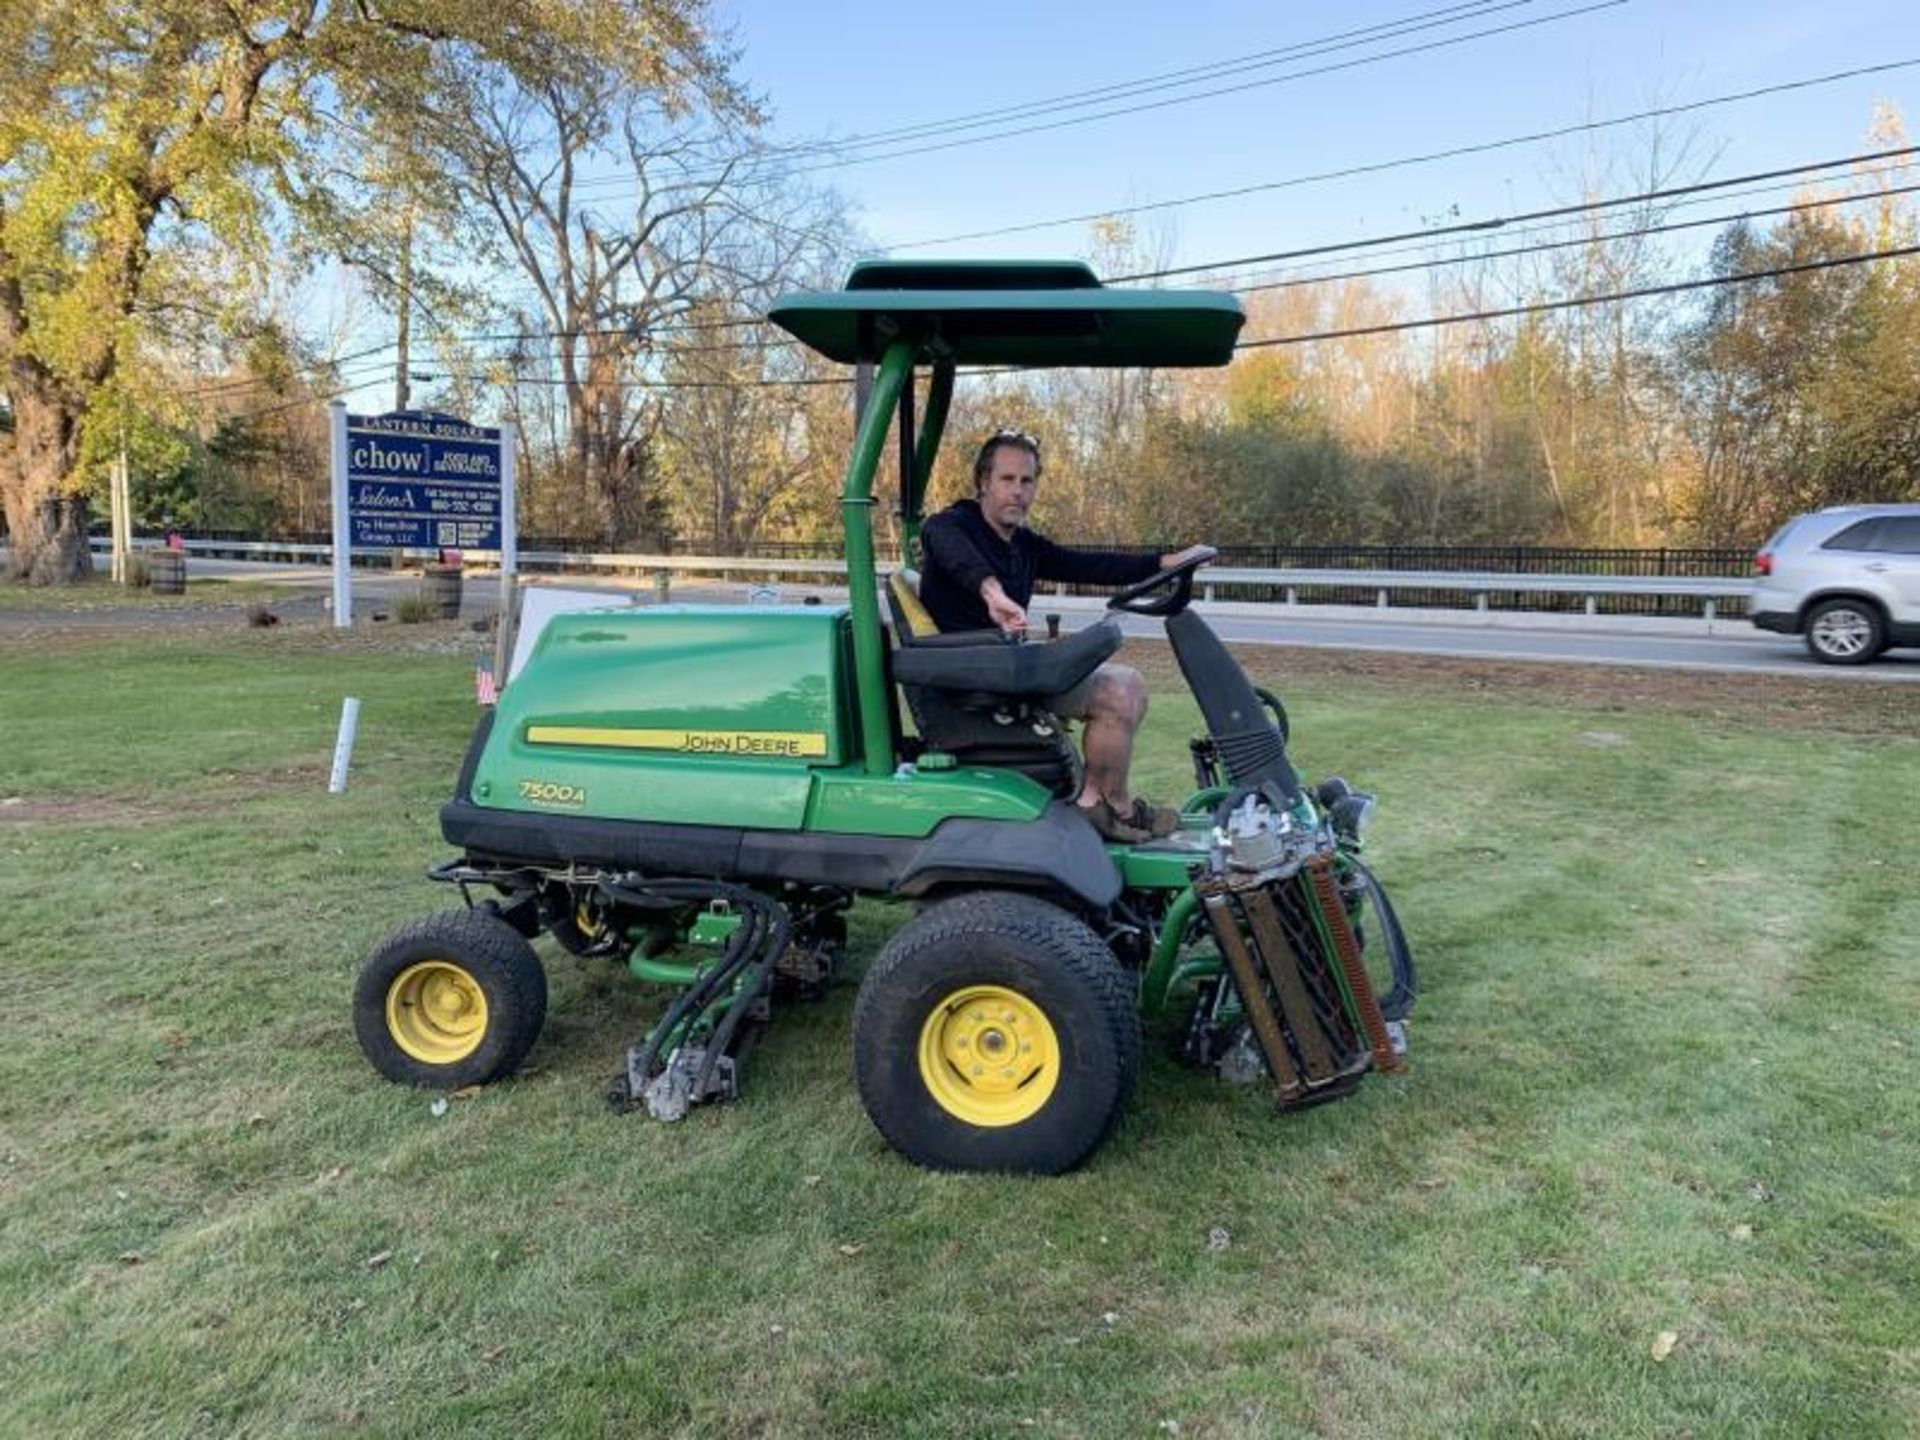 2016 John Deere 7500A Precision Cut 2WD T4, 2,355 Hours, SN: 1TC750AVLGR030141 - Image 13 of 17